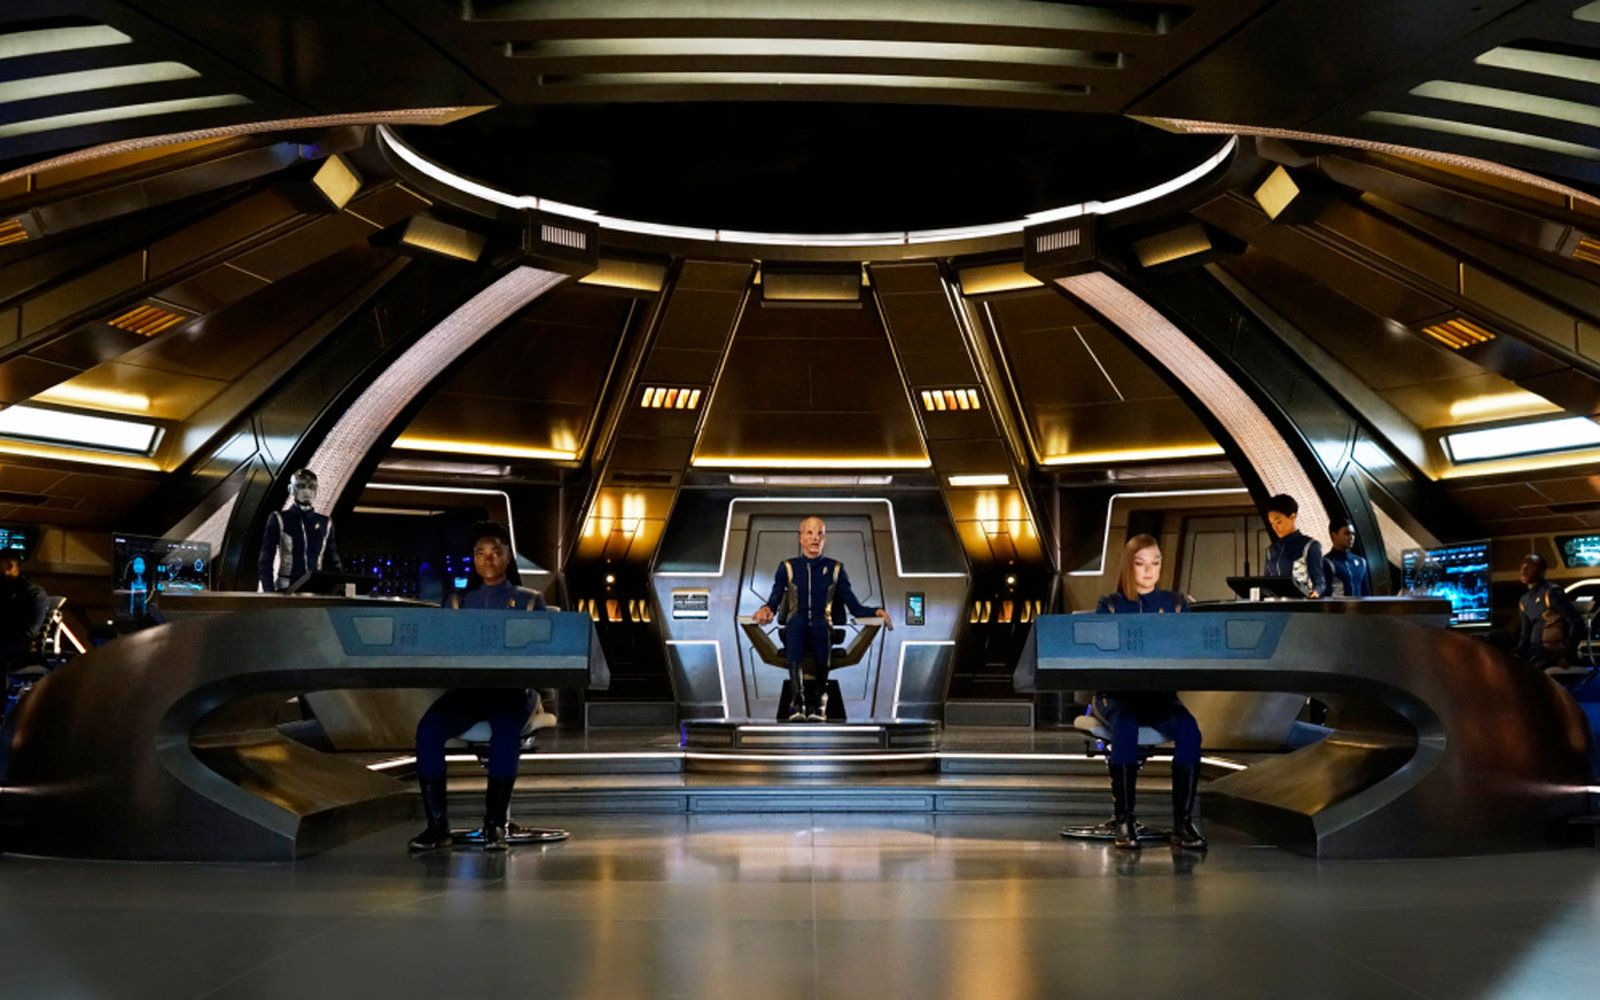 Star Trek Discovery Season 1 Blu Ray Trailer Bonus Features Revealed Star Trek Bridge Star Trek Tv Star Trek